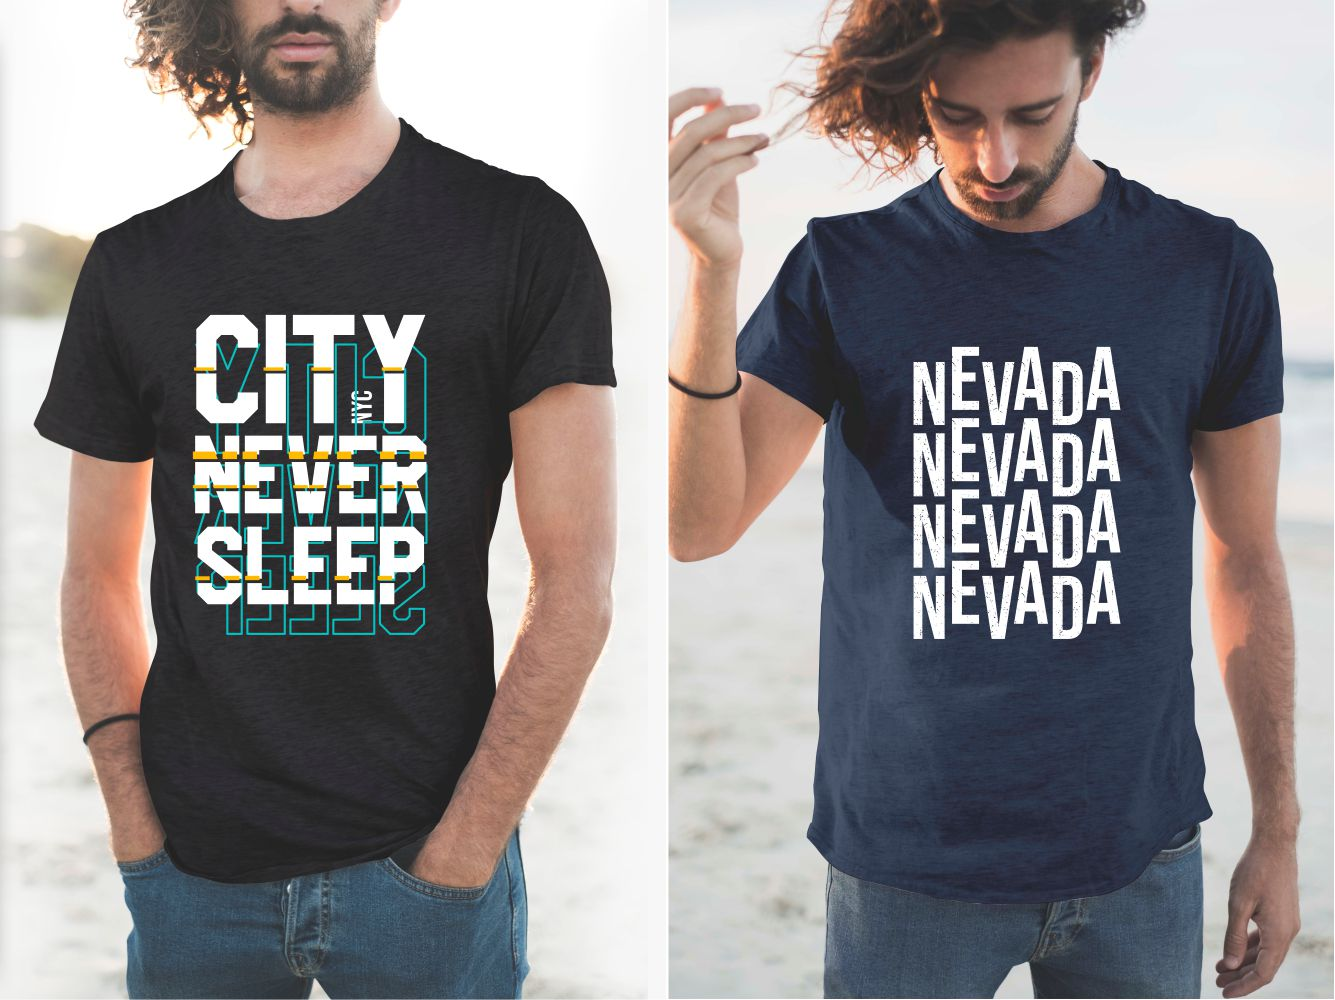 Black and blue T-shirts with Nevada and the city never sleeps.